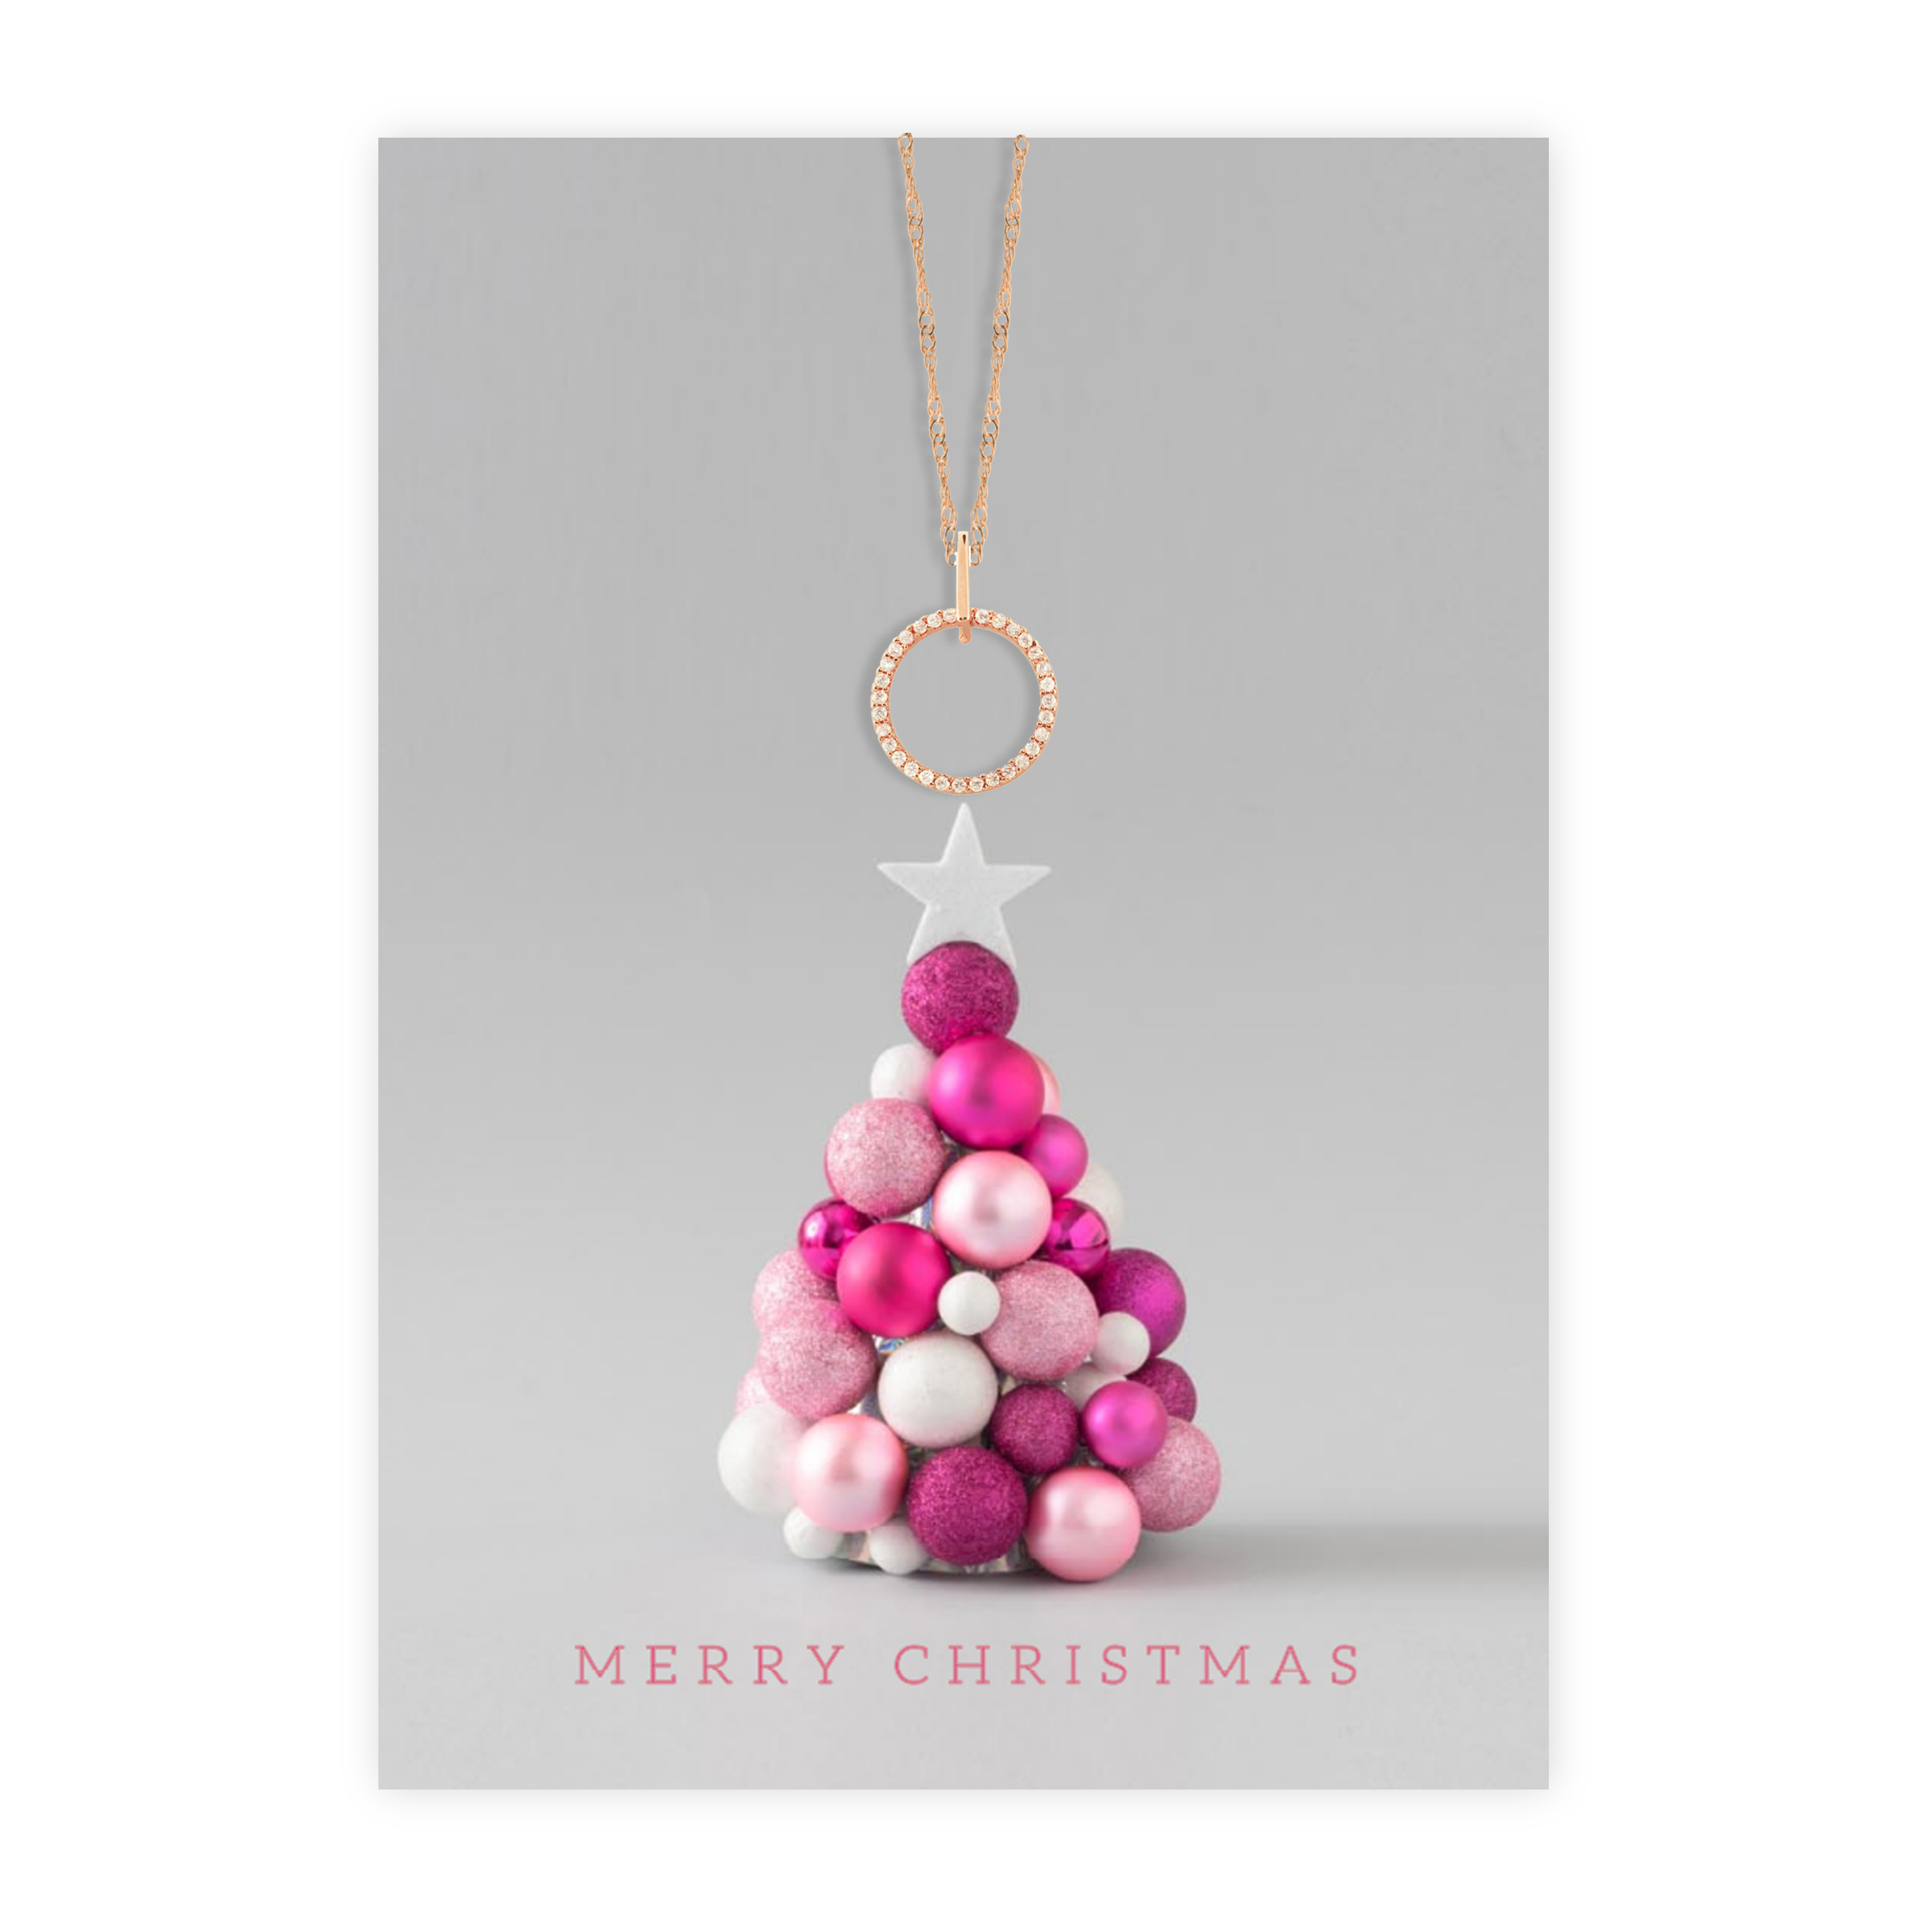 Christmas Card With Rose Gold Halo Pendant